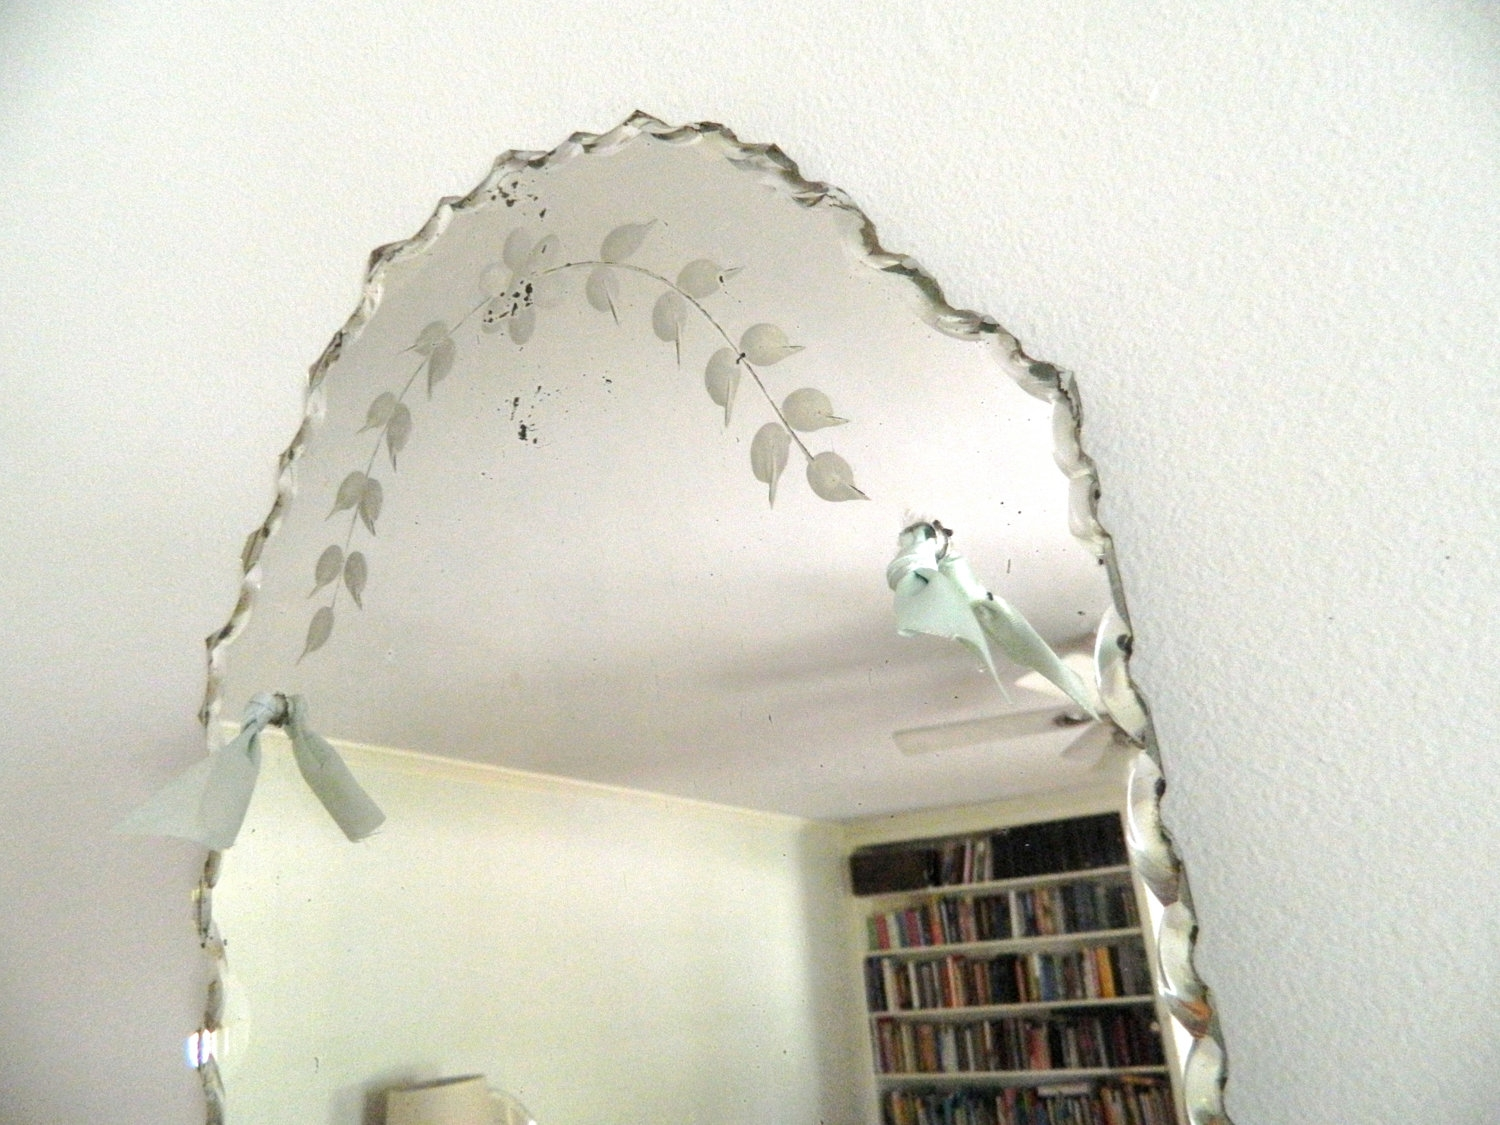 Vintage Etched Beveled Mirror Frameless Throughout Antique Frameless Mirrors (Image 12 of 15)